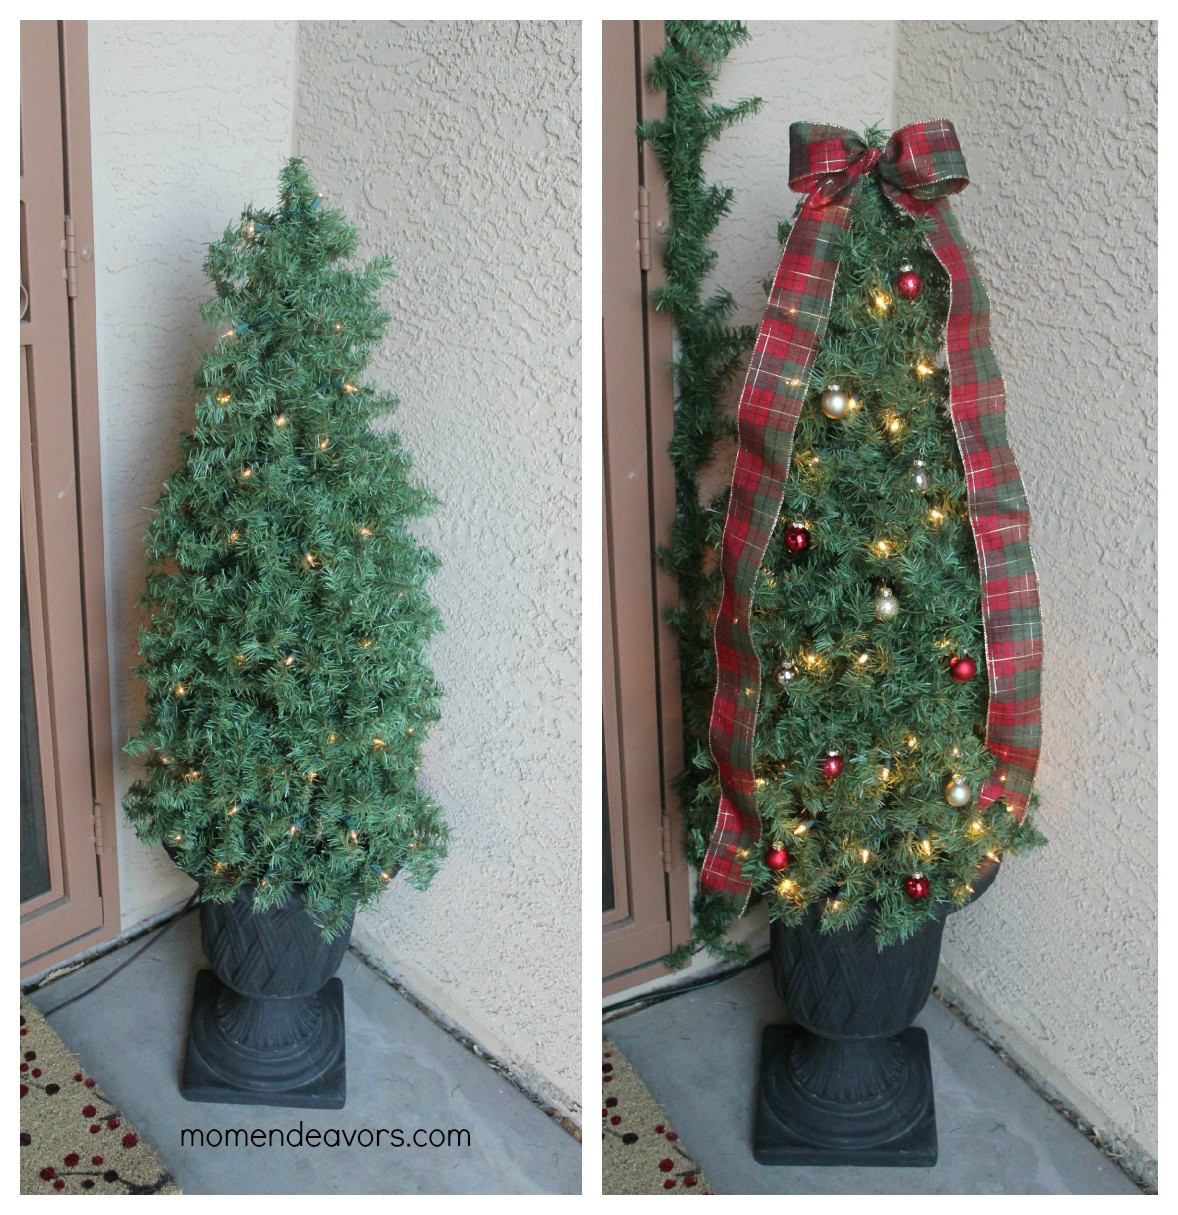 Best ideas about DIY Christmas Tree . Save or Pin DIY Decorative Topiary Christmas Trees Now.